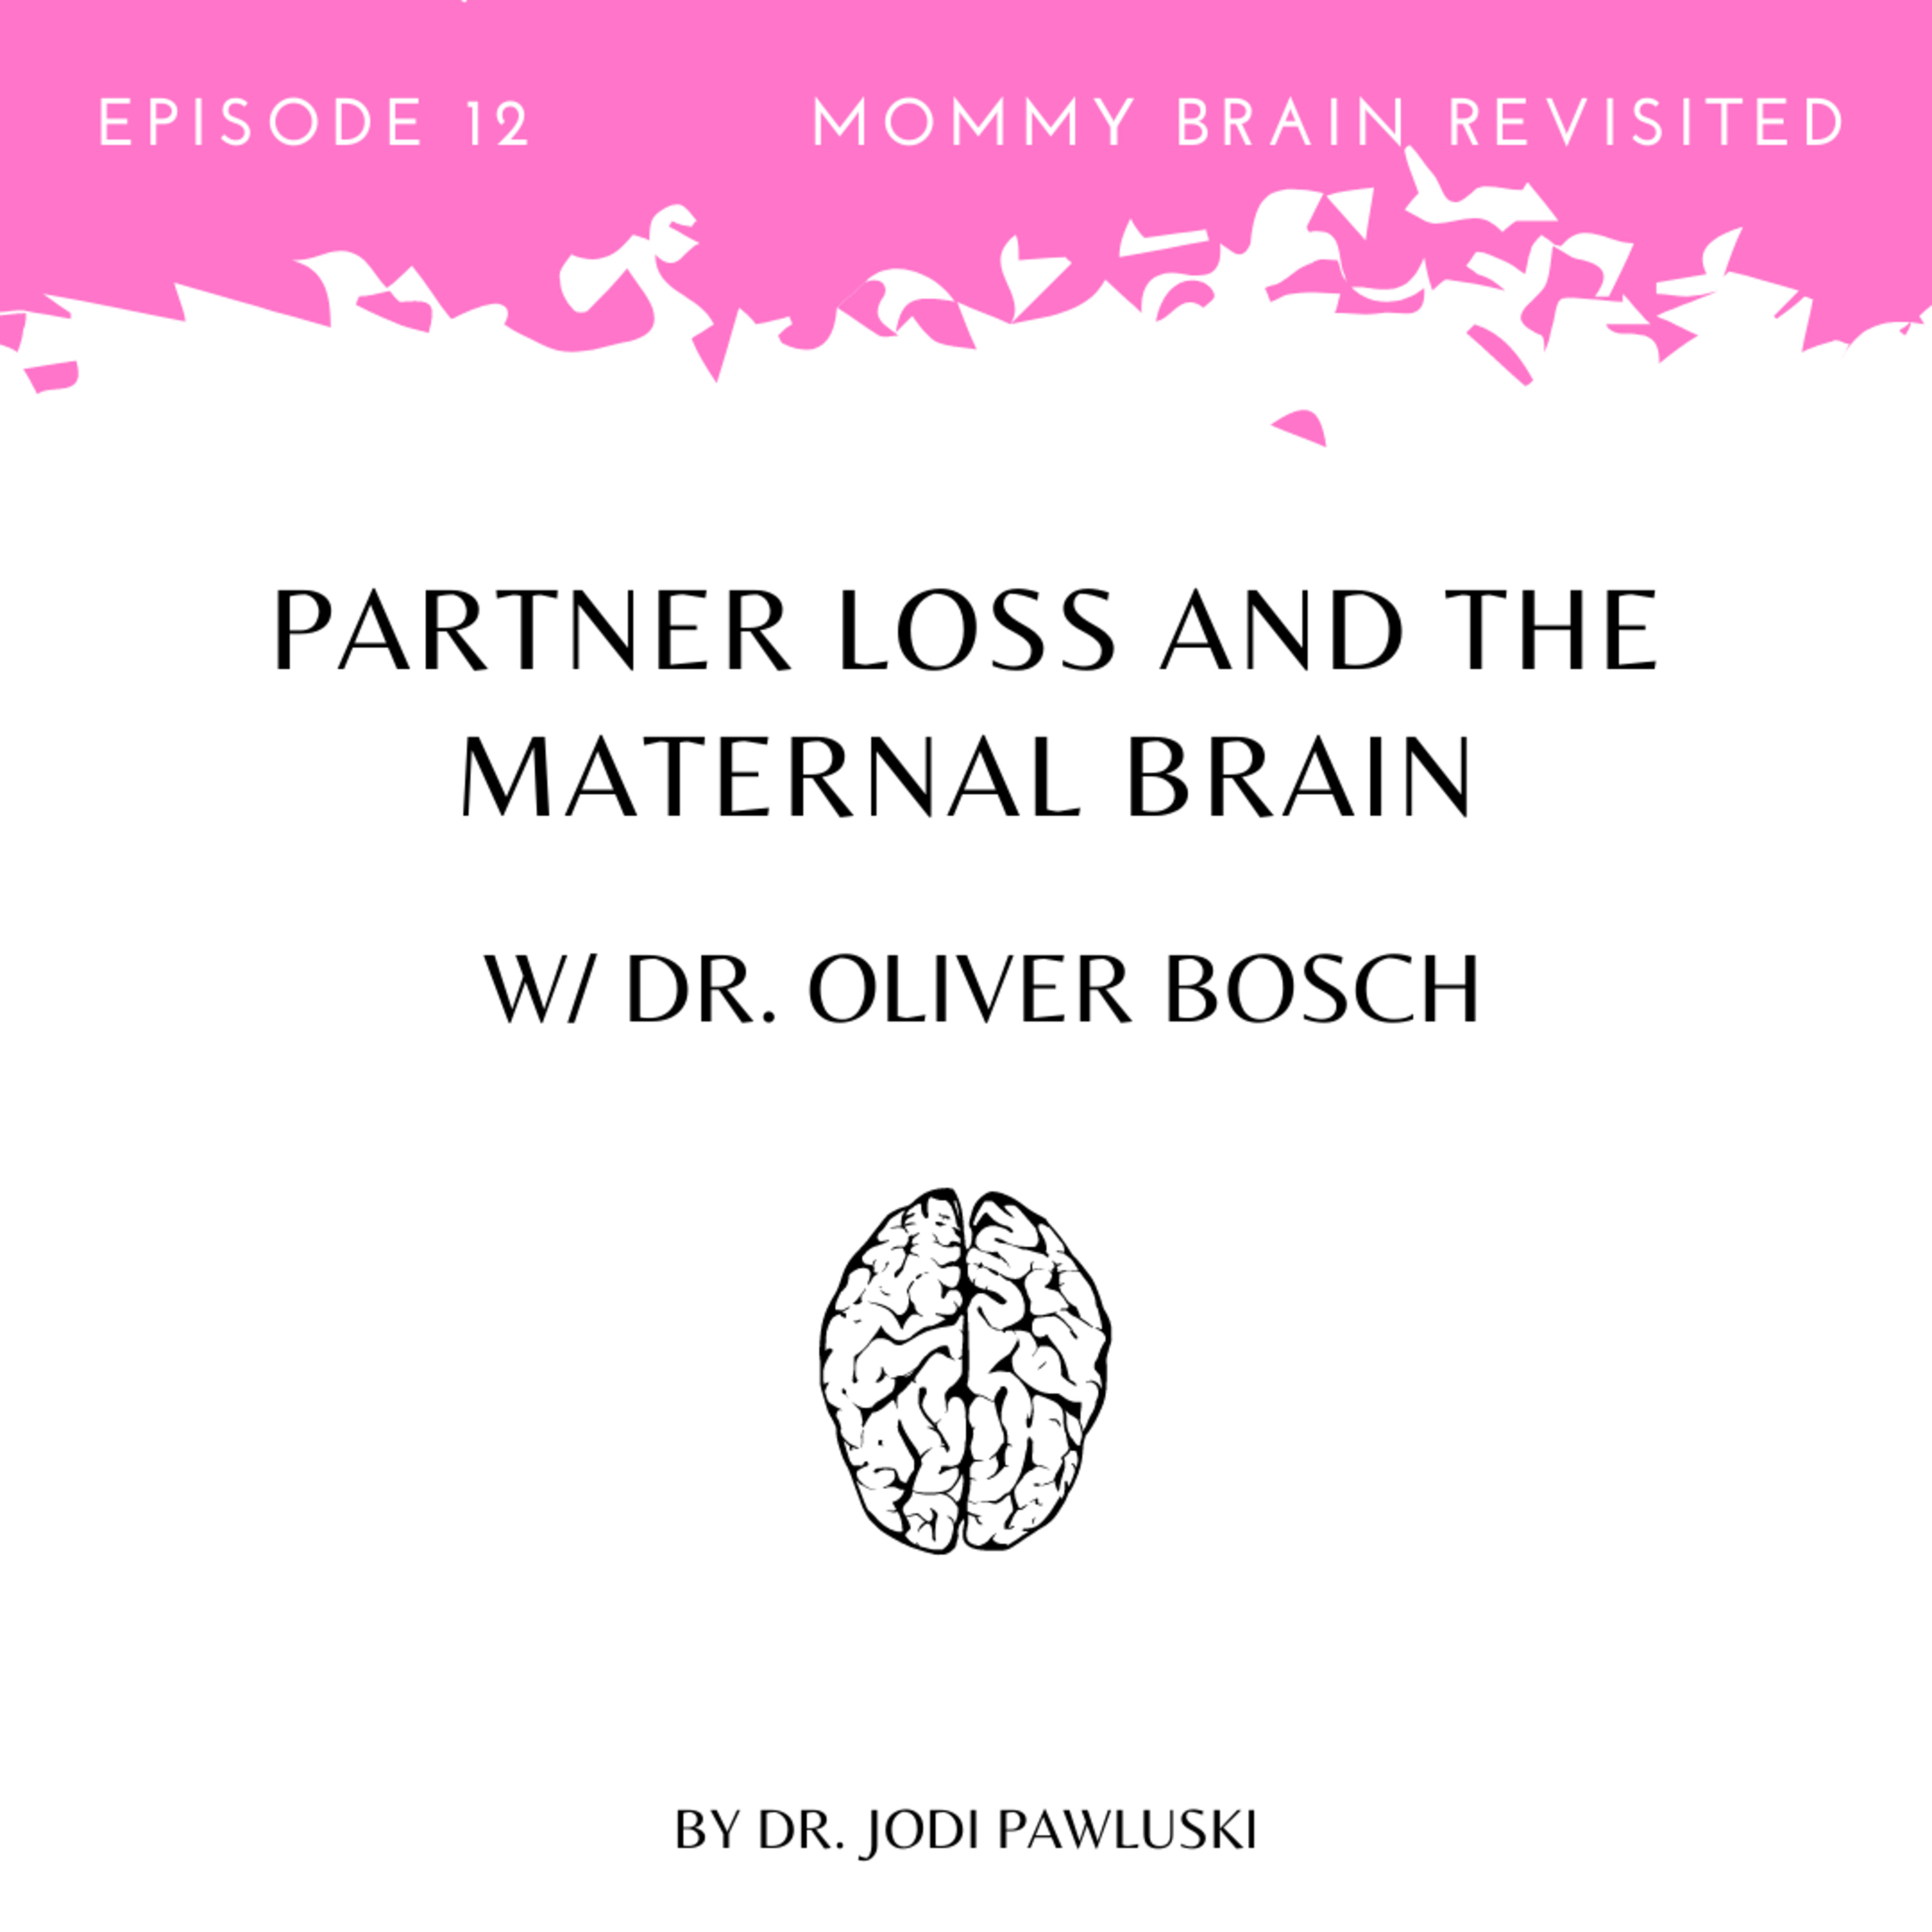 12. Partner Loss and the Maternal Brain